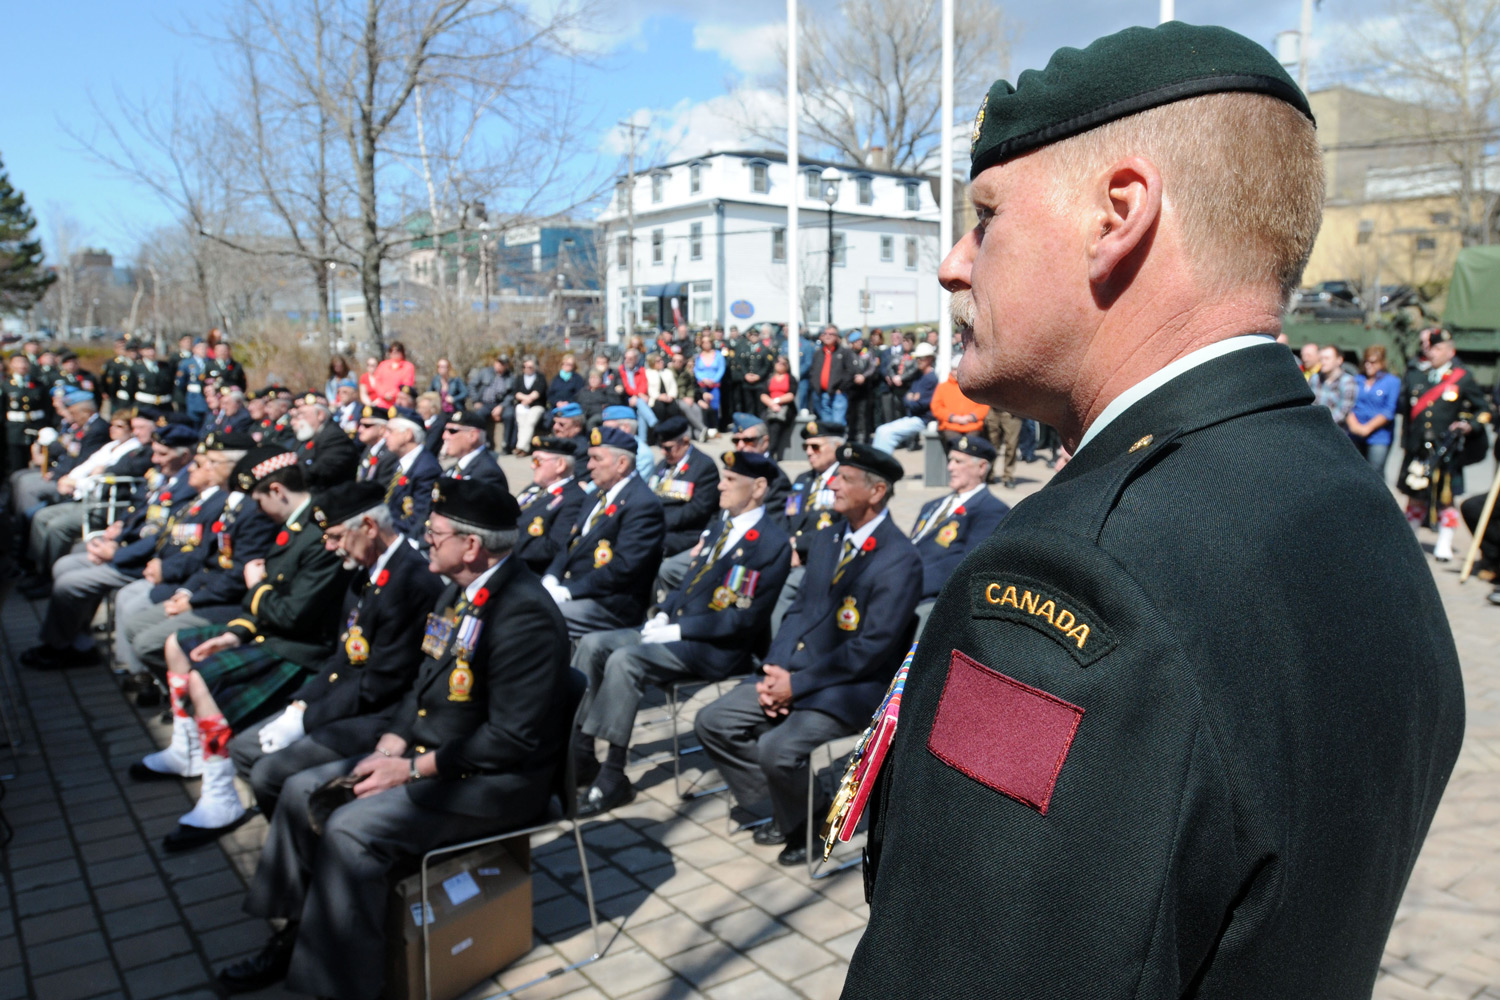 THE 5TH CANADIAN DIVISION REINSTATES A COLOURED PATCH ON UNIFORMS May 2014 saw the reinstatement of a coloured uniform patch, bringing the army back to its roots and a sign of respect for soldiers who fought in both world wars.